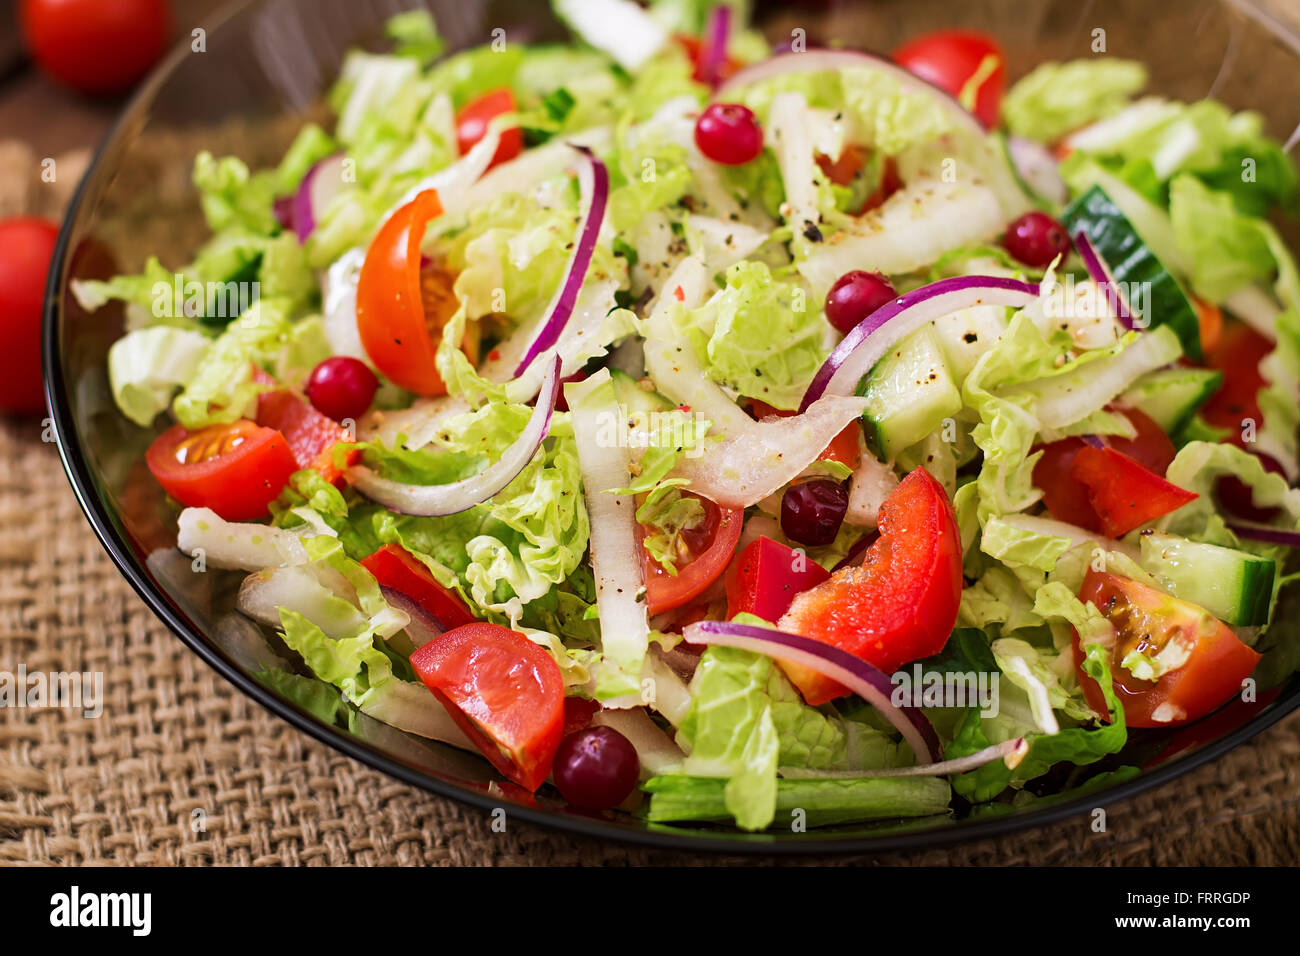 Dietary salad with fresh vegetables (tomato, cucumber, Chinese cabbage, red onion and cranberries) - Stock Image